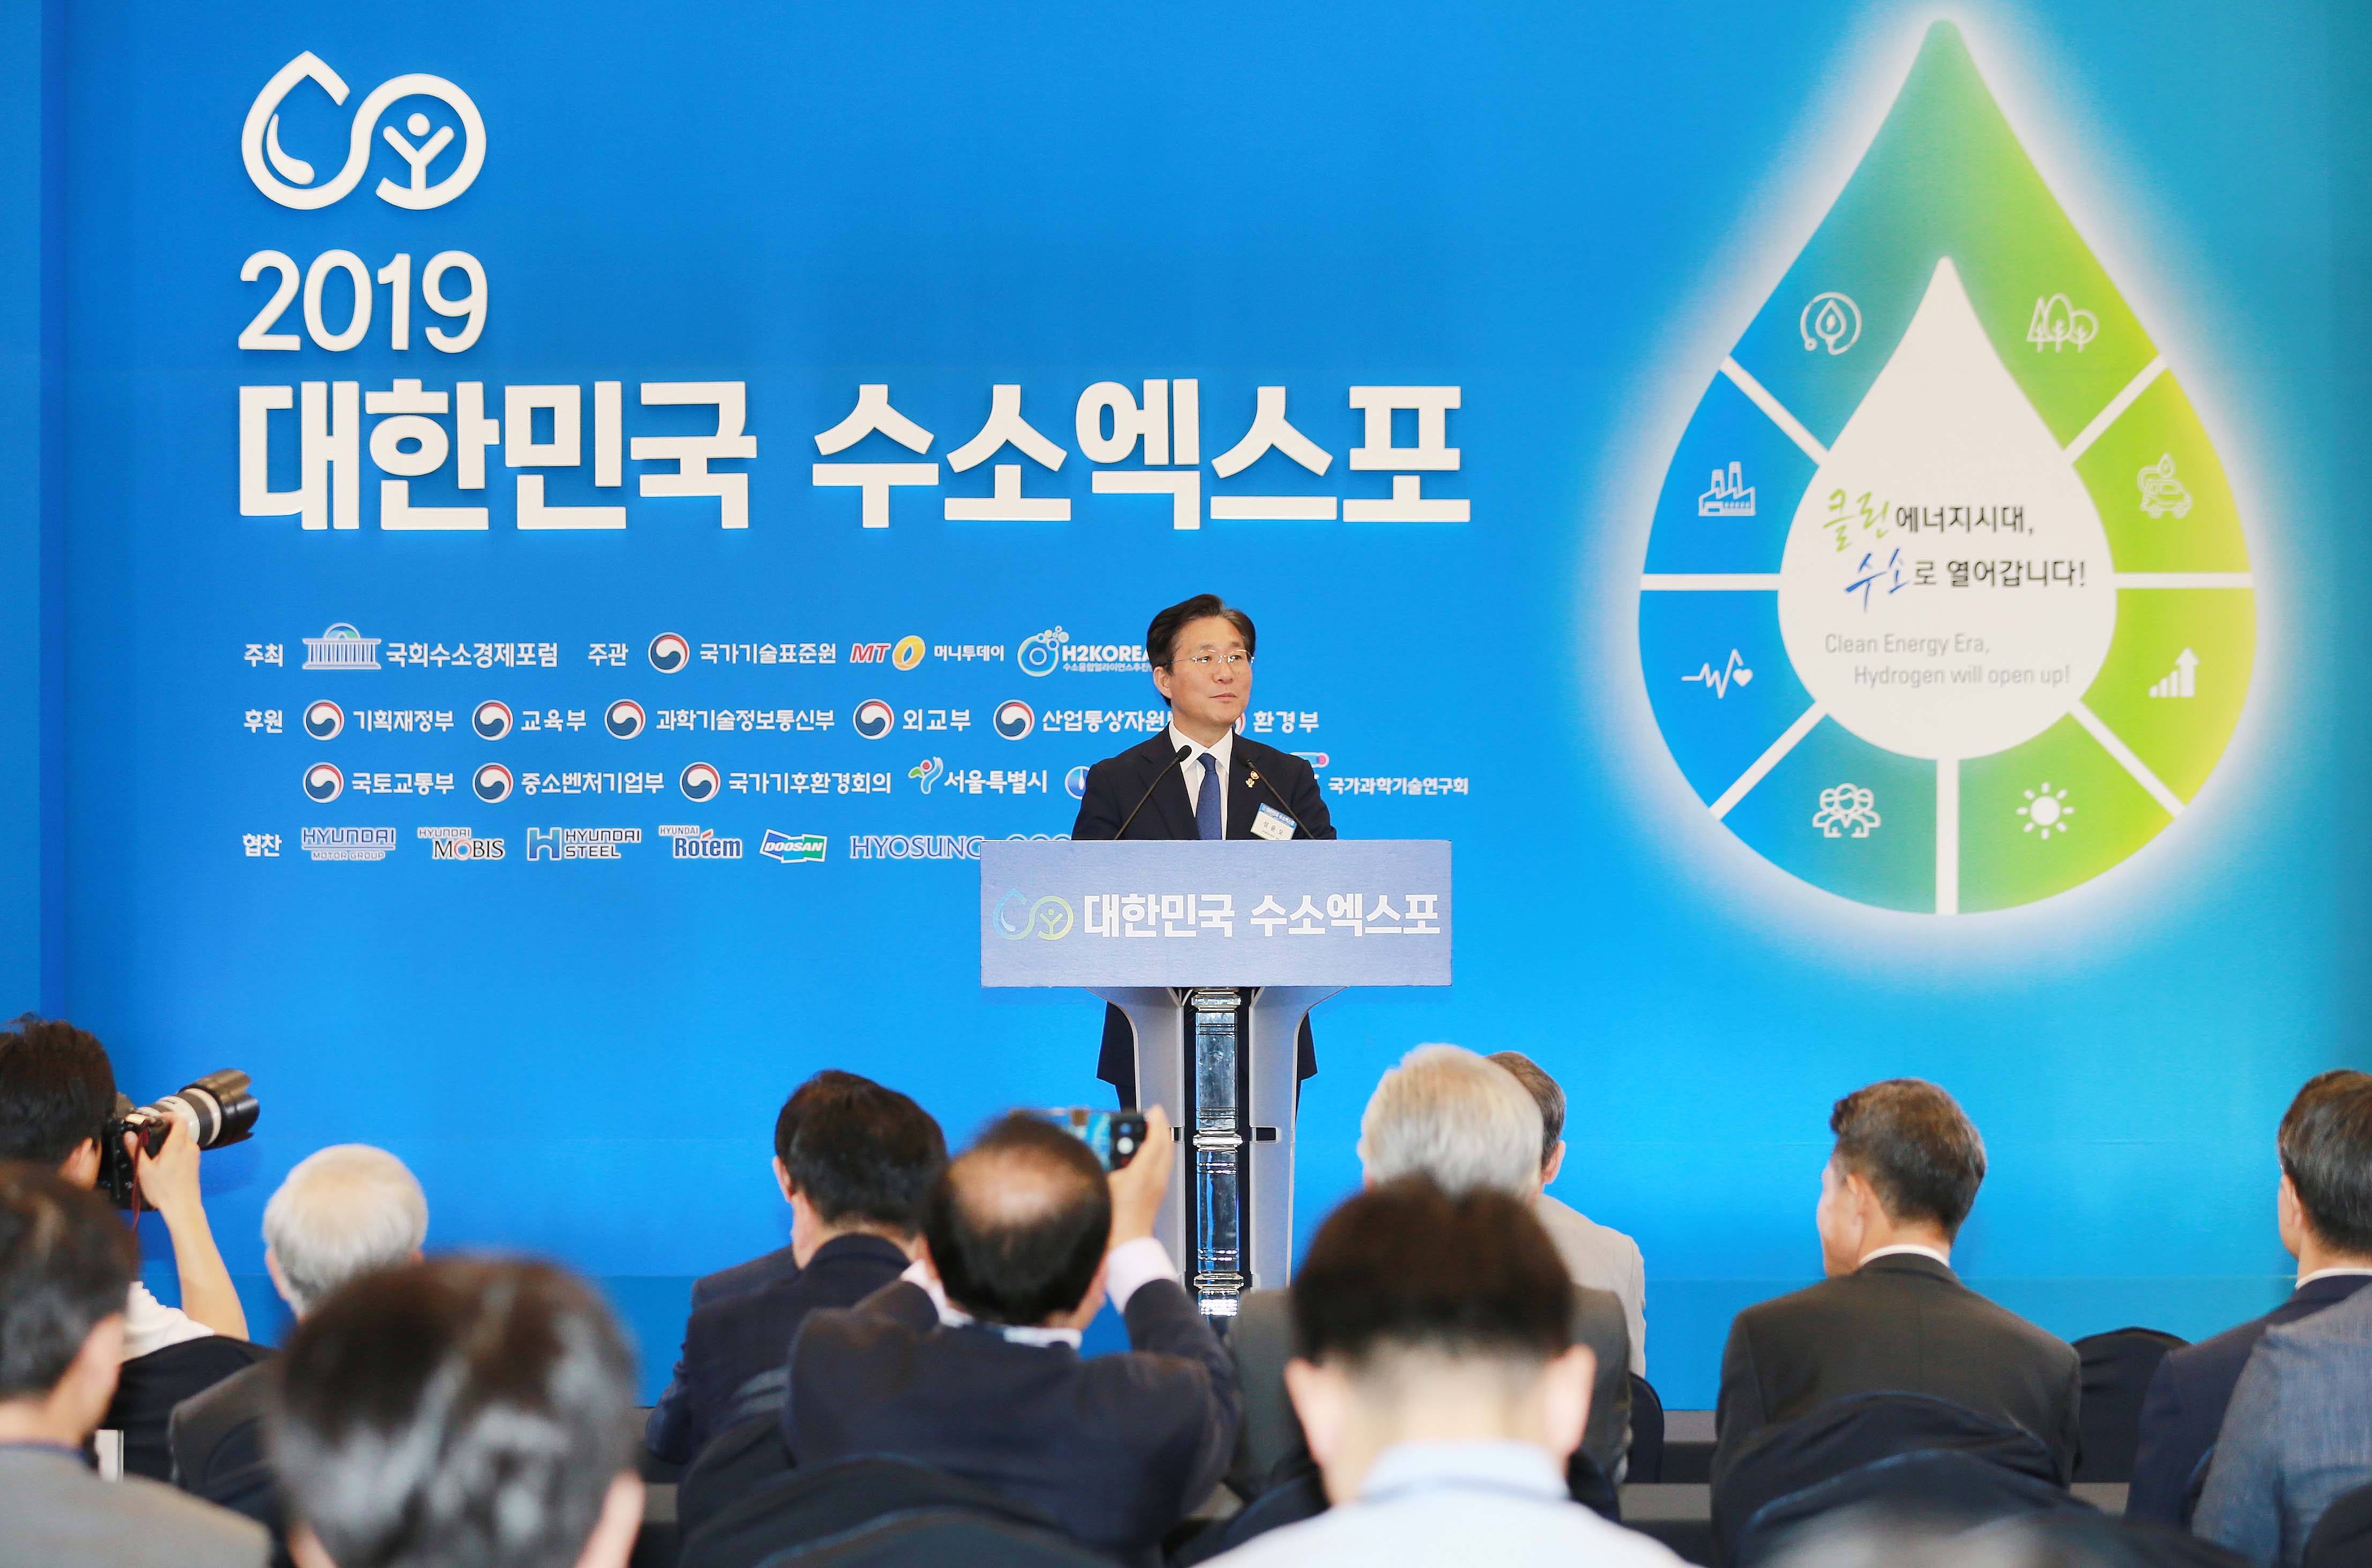 2019 Korea Hydrogen Expo takes place in Seoul Image 0